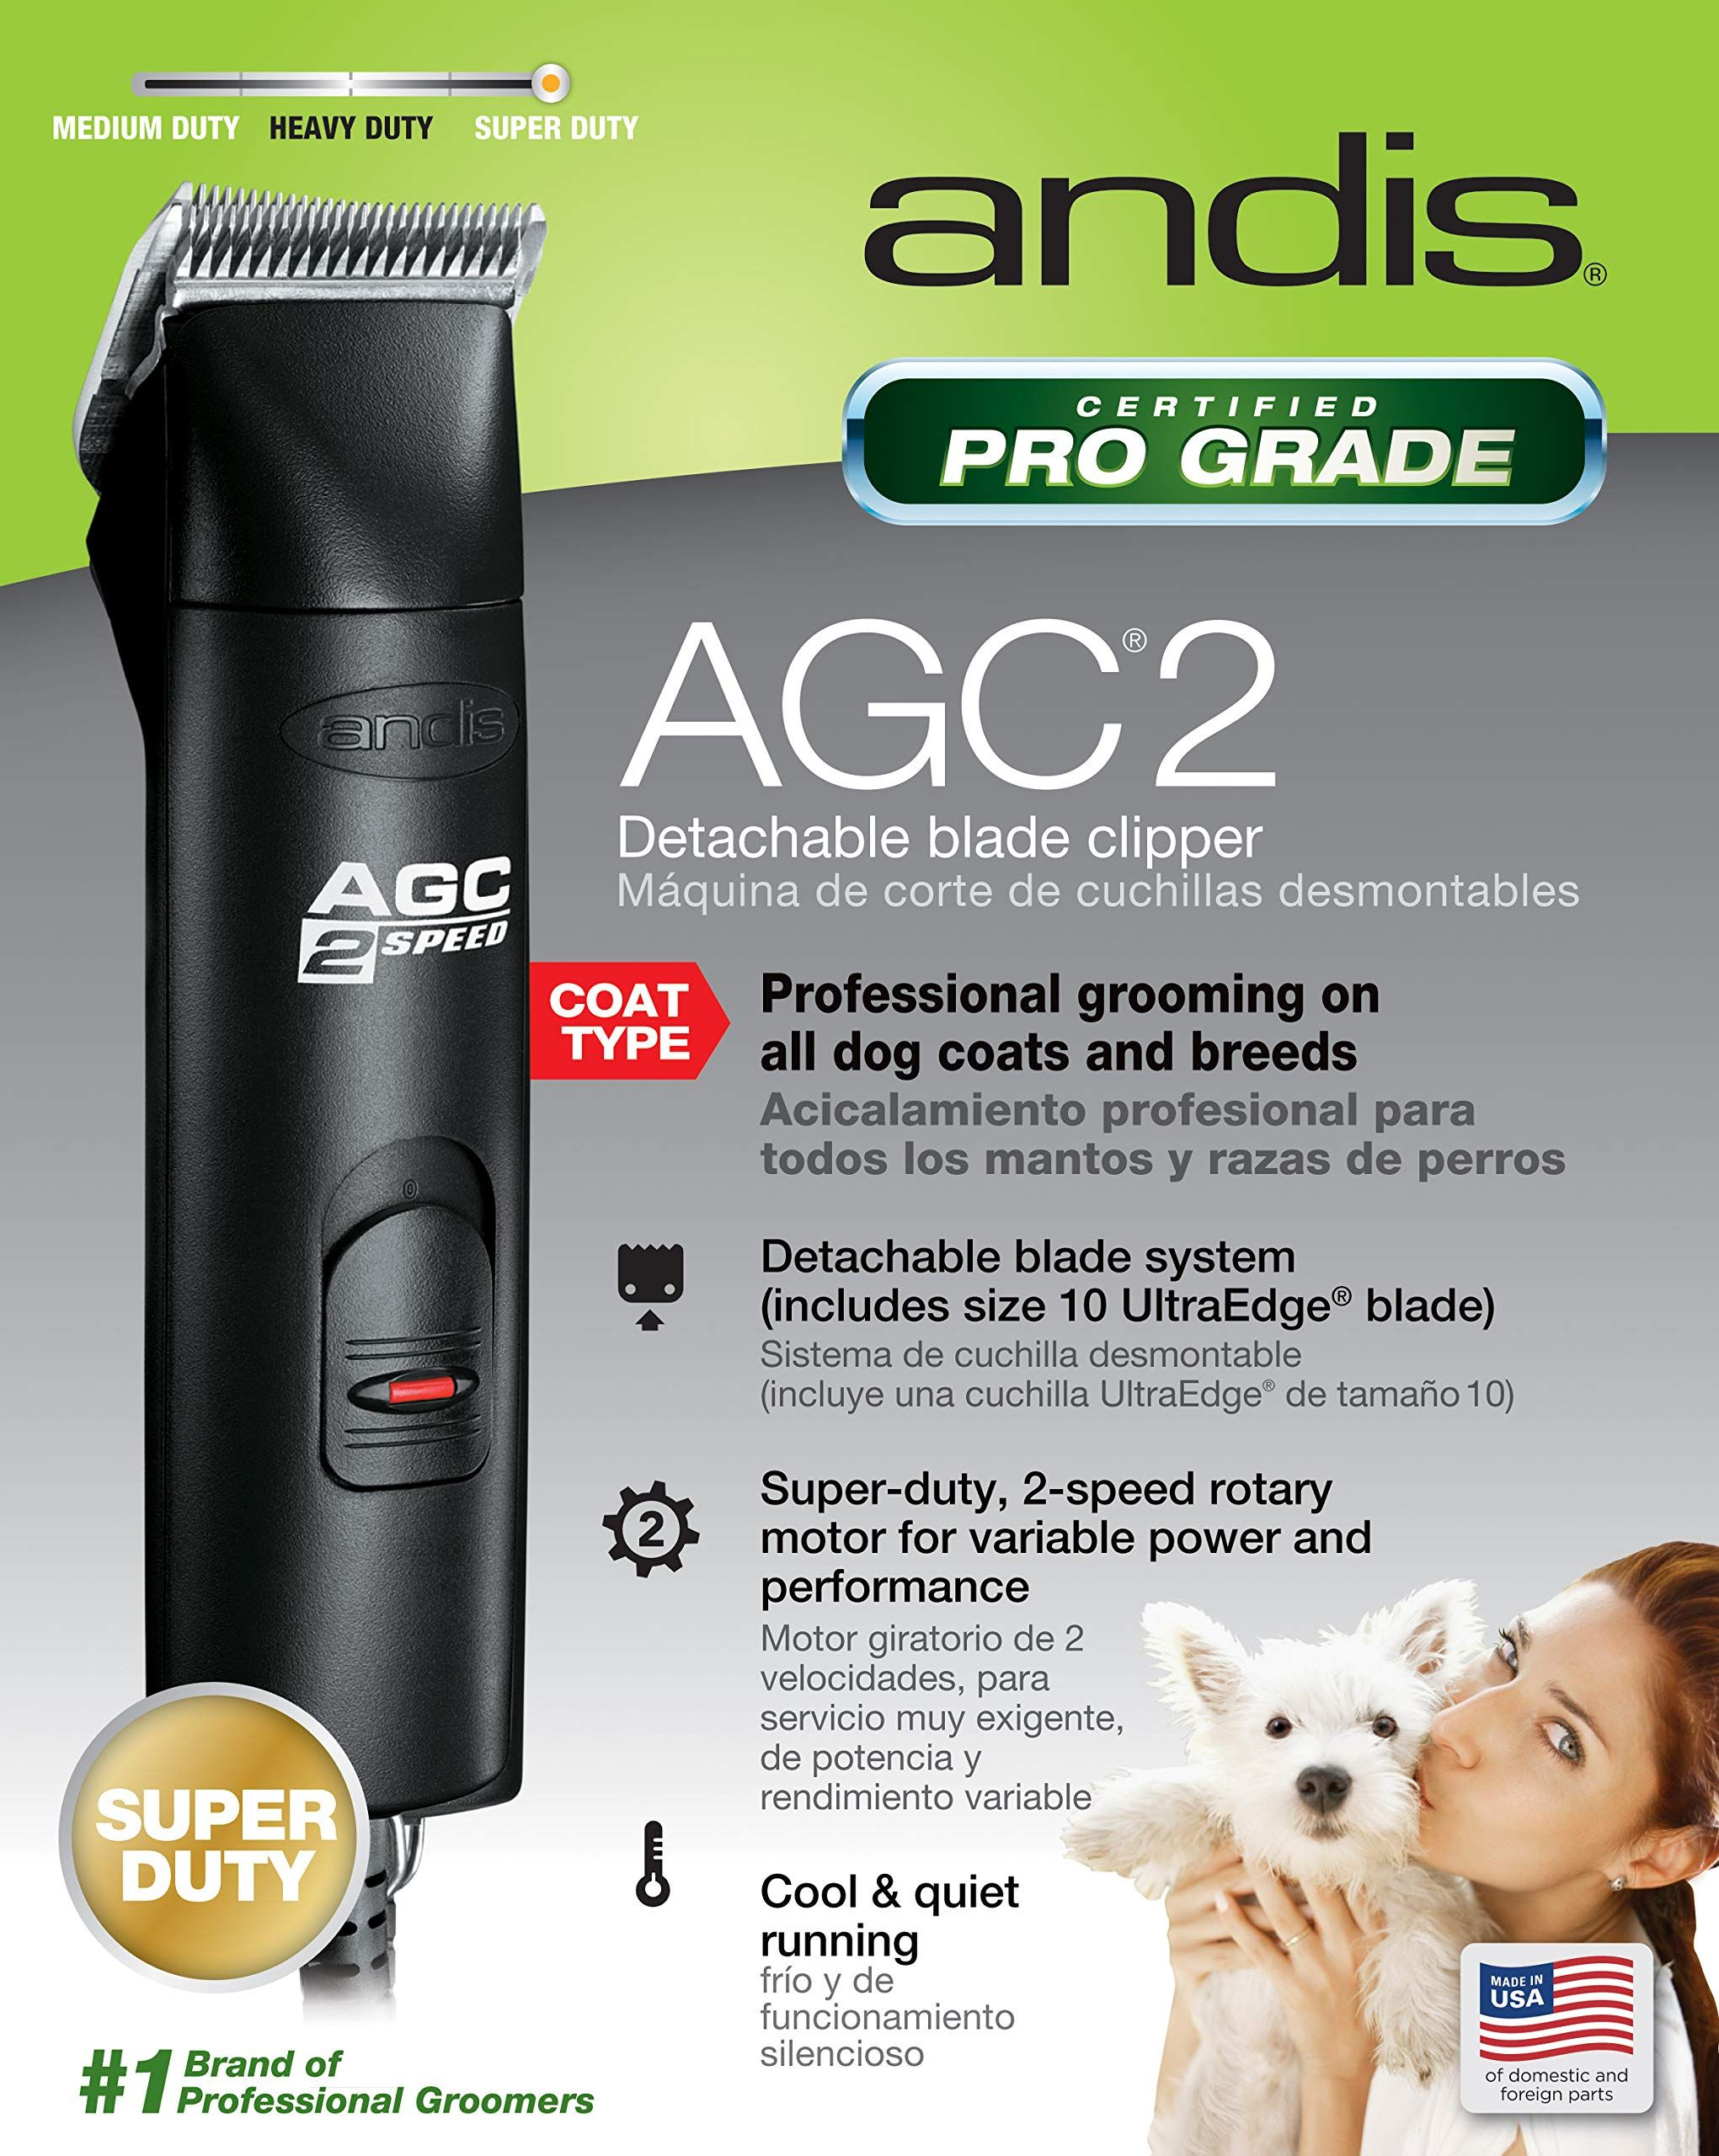 Andis Proclip Agc2 2 Speed Detachable Blade Clipper Professional Animal Grooming Agc Black 22340 Ad Speed Sponsored Deta Grooming Dog Grooming Andy